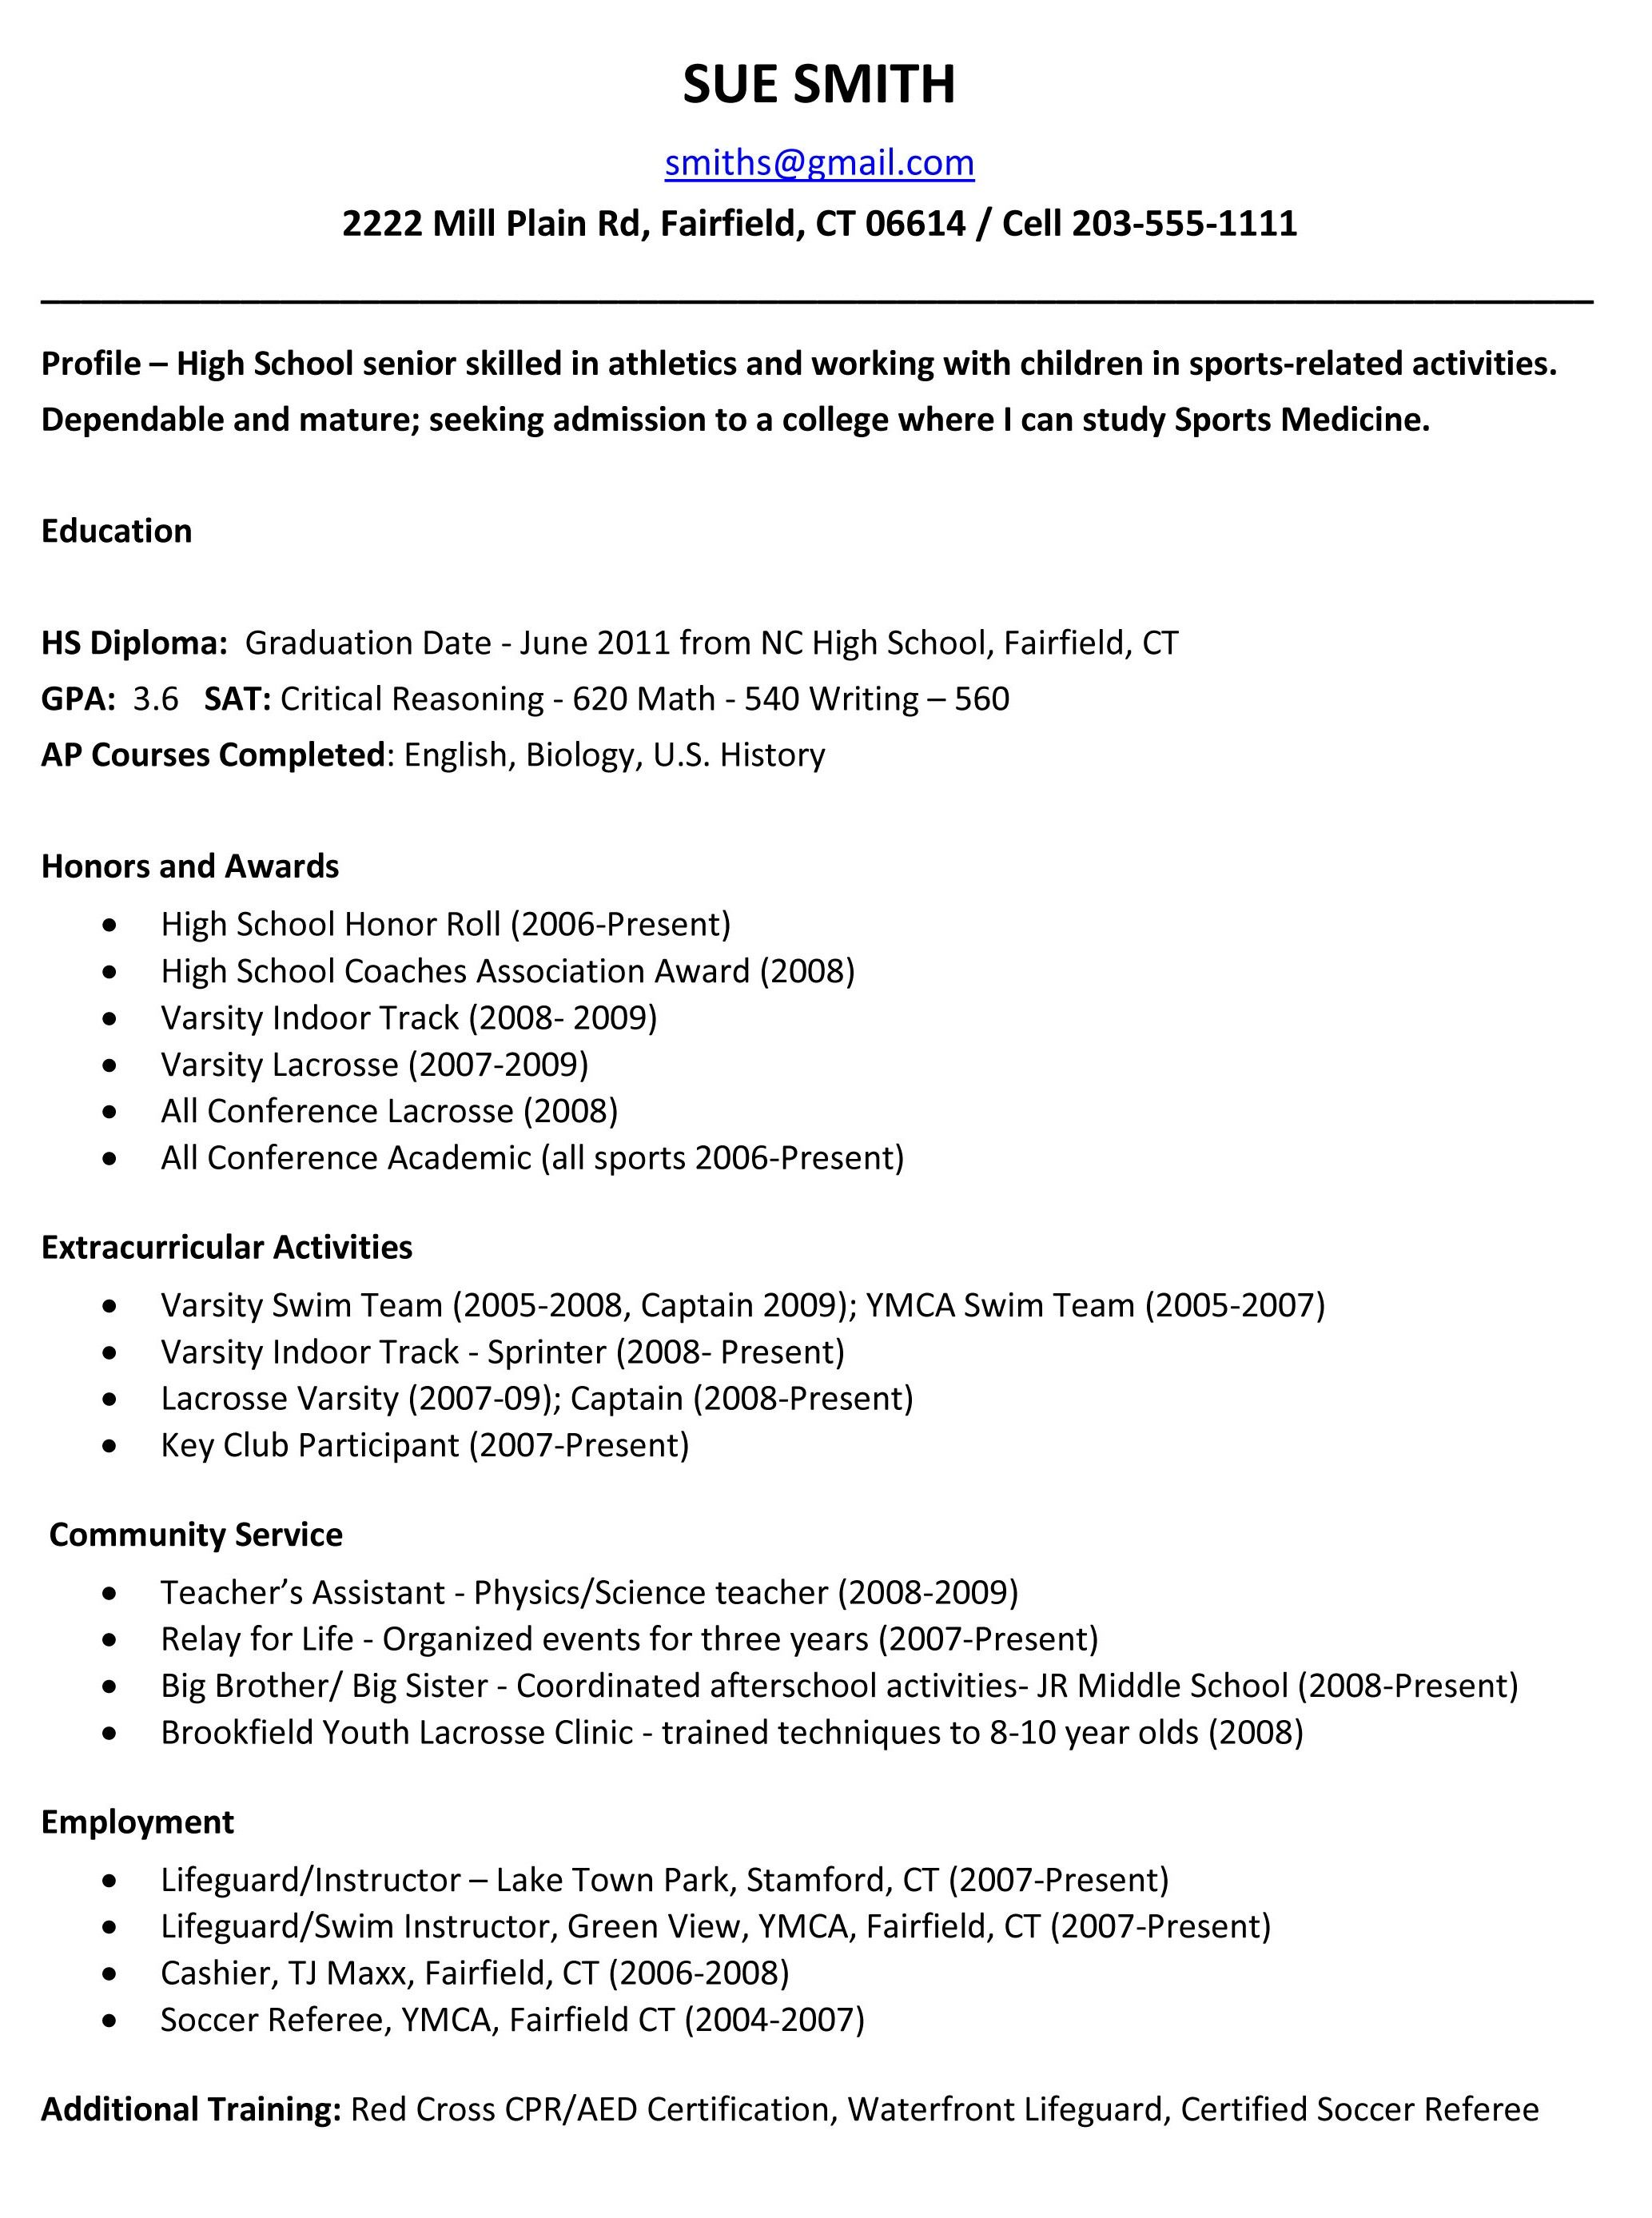 Example Resume For High School Students For College Applications School  Resume Templateregularmidwesterners.com | Regularmidwesterners  Example College Resumes